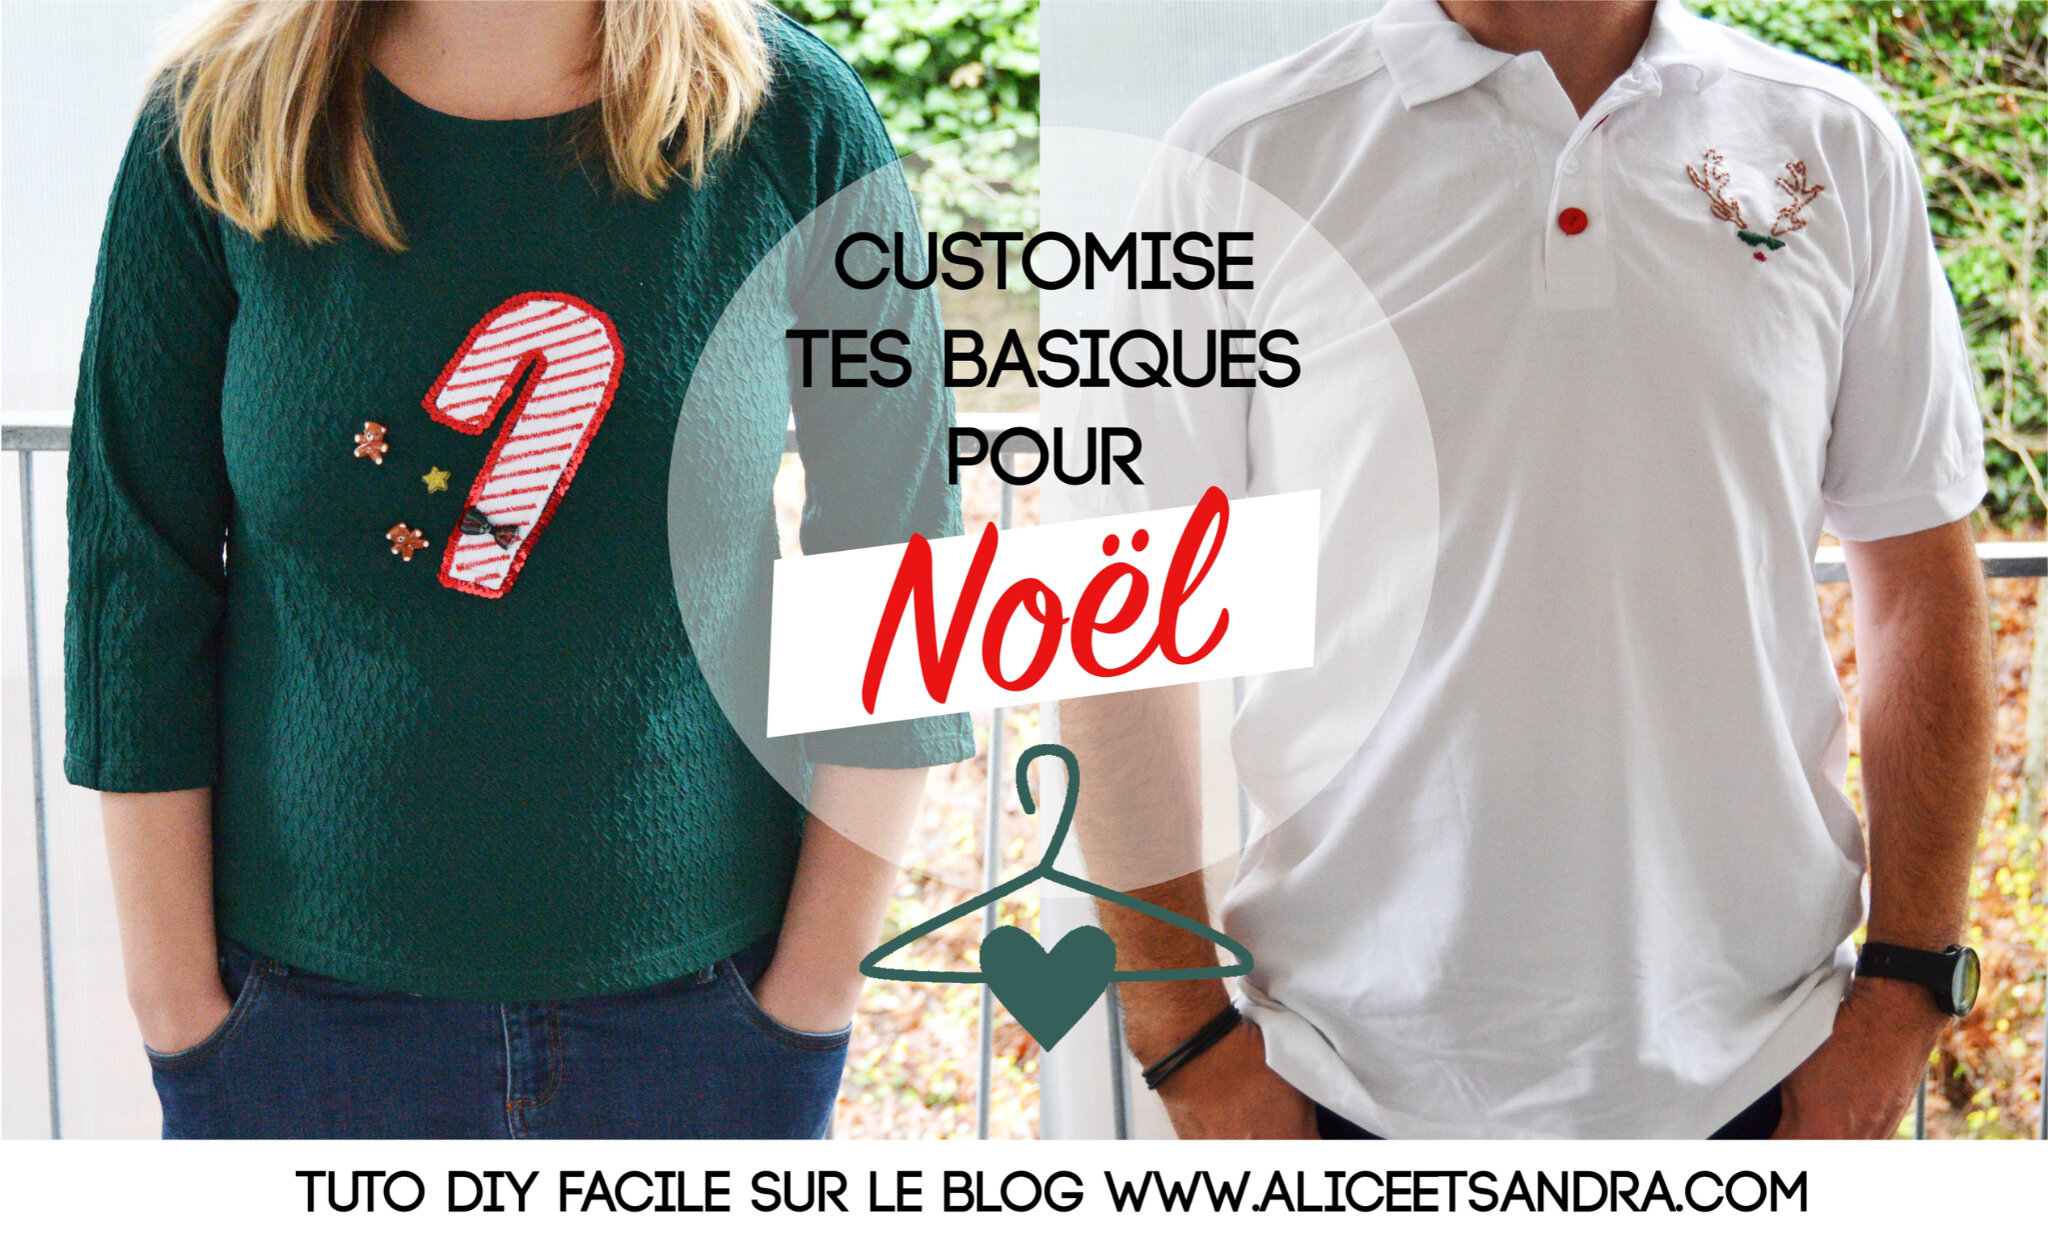 Diy Customise Tes T Shirts Pour Noel Alice Sandra